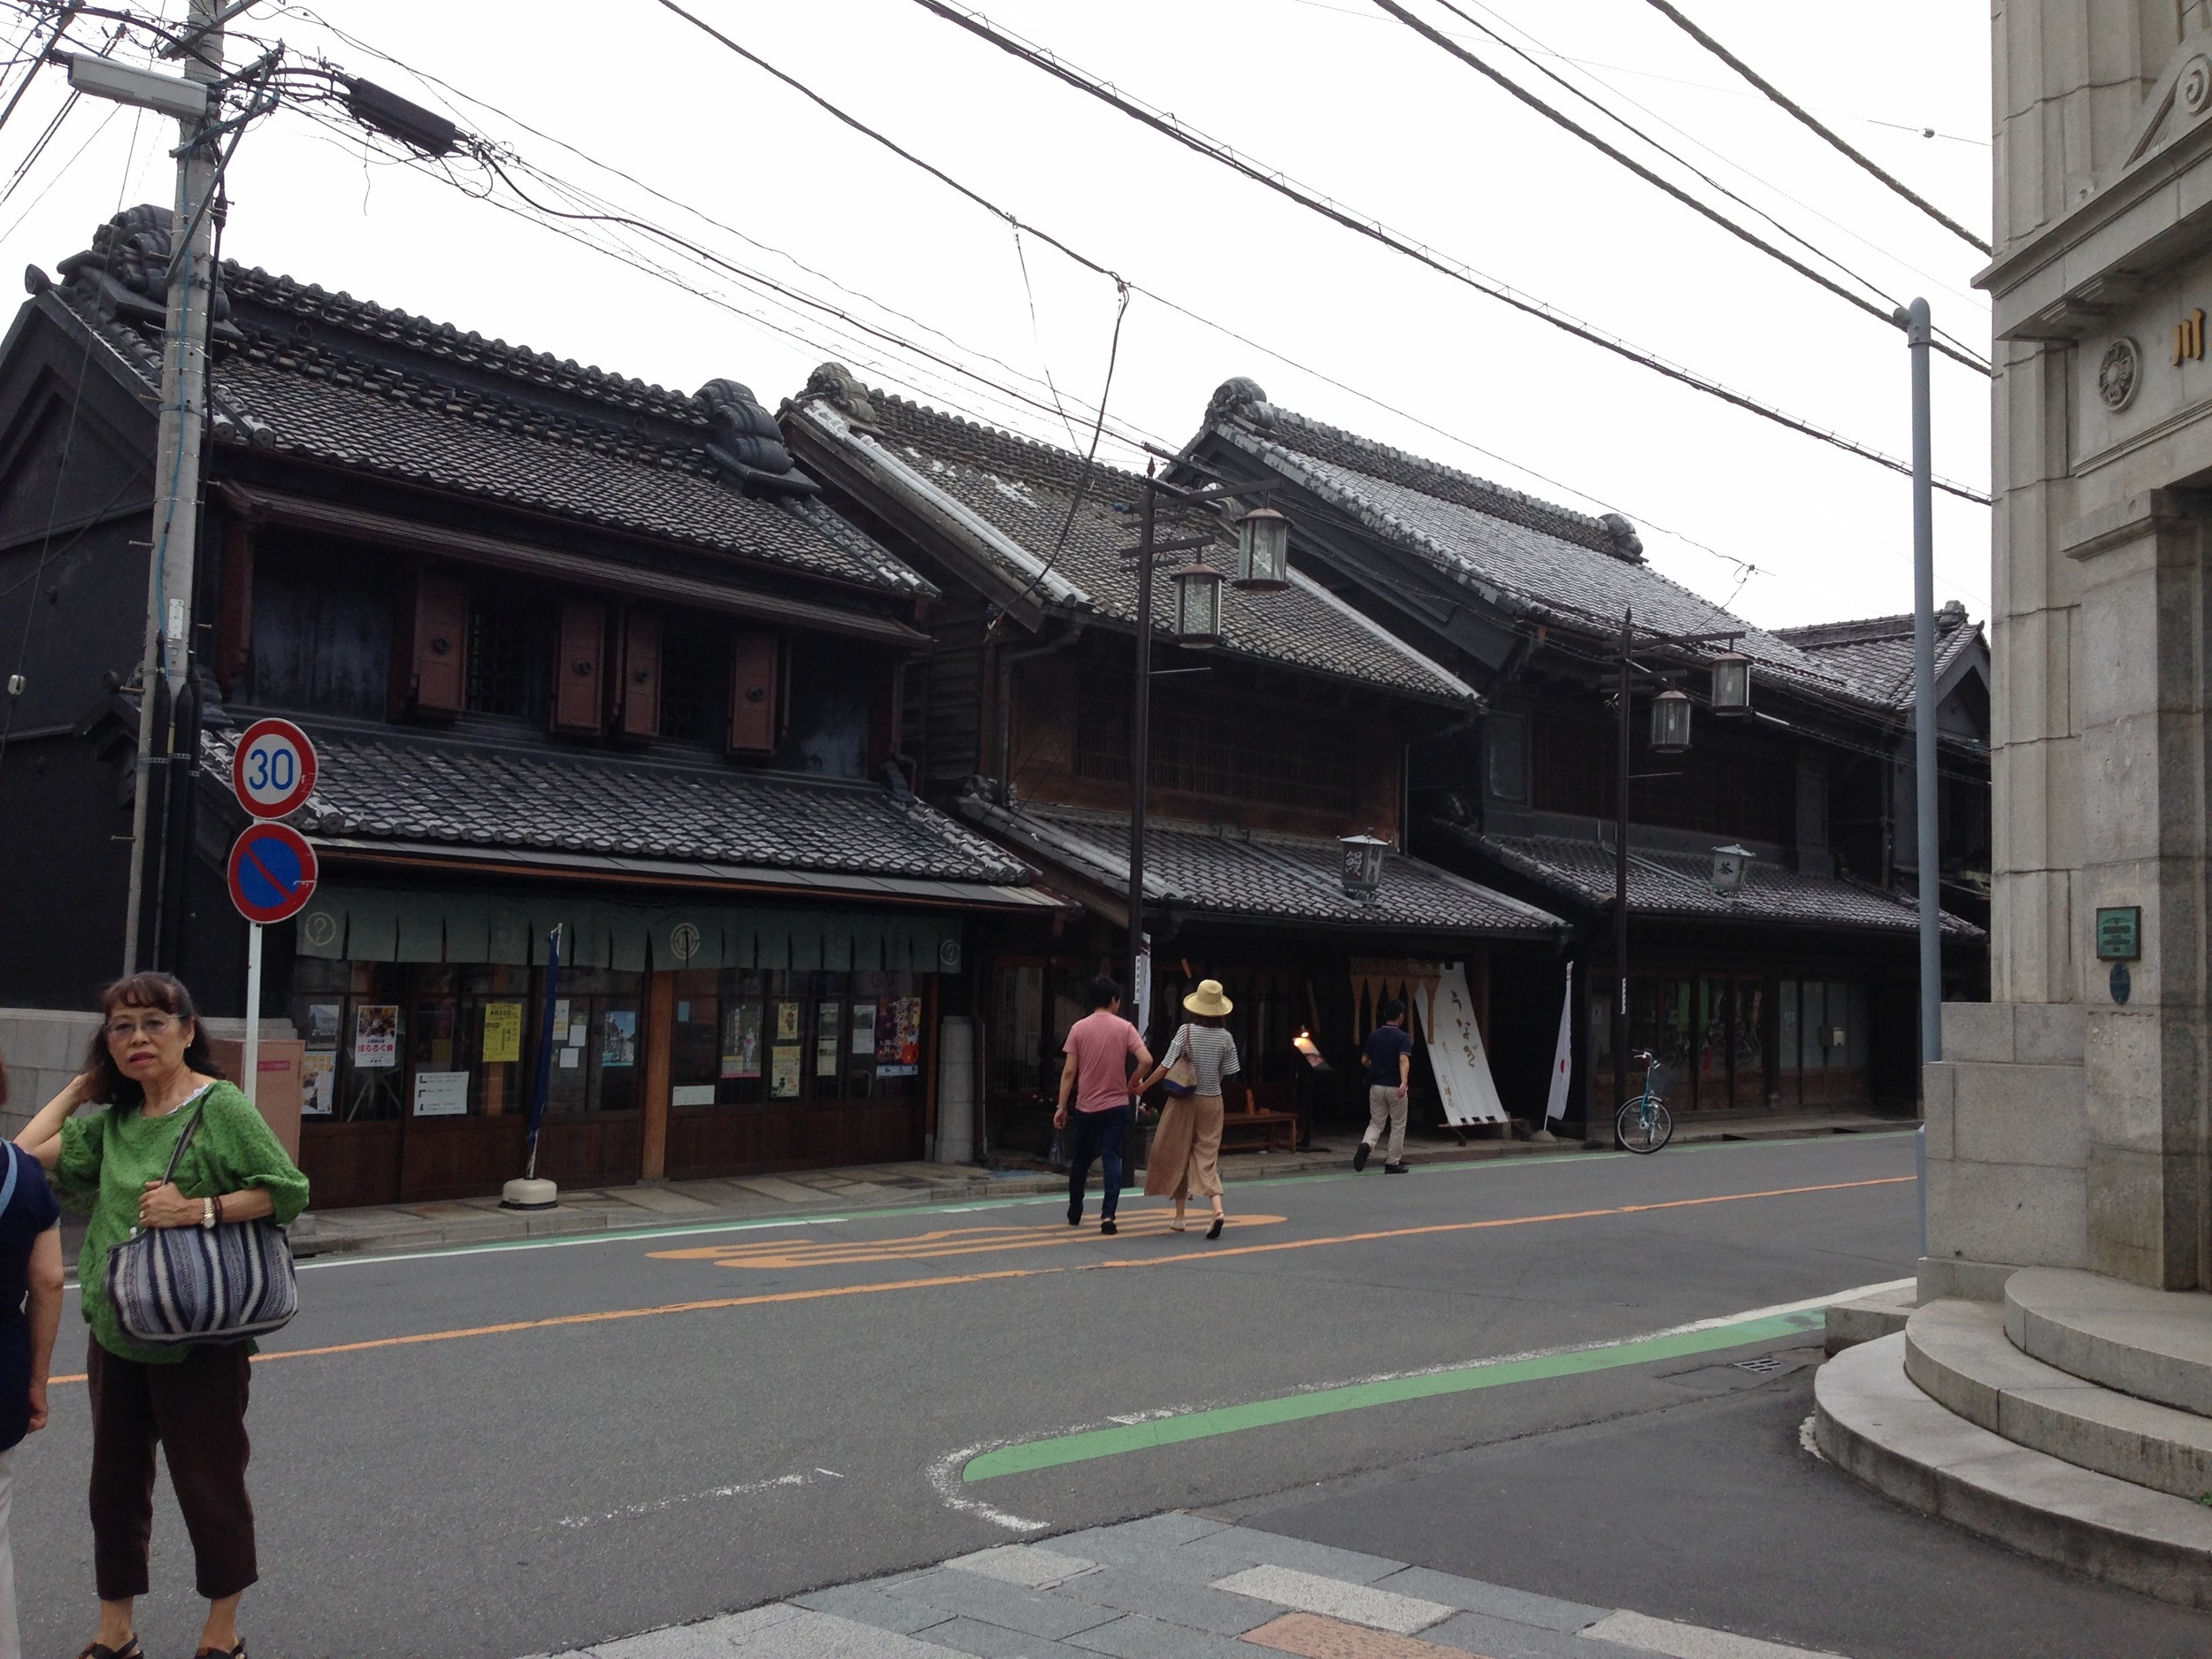 A quick look at some of the Edo-style buildings in Kawagoe.